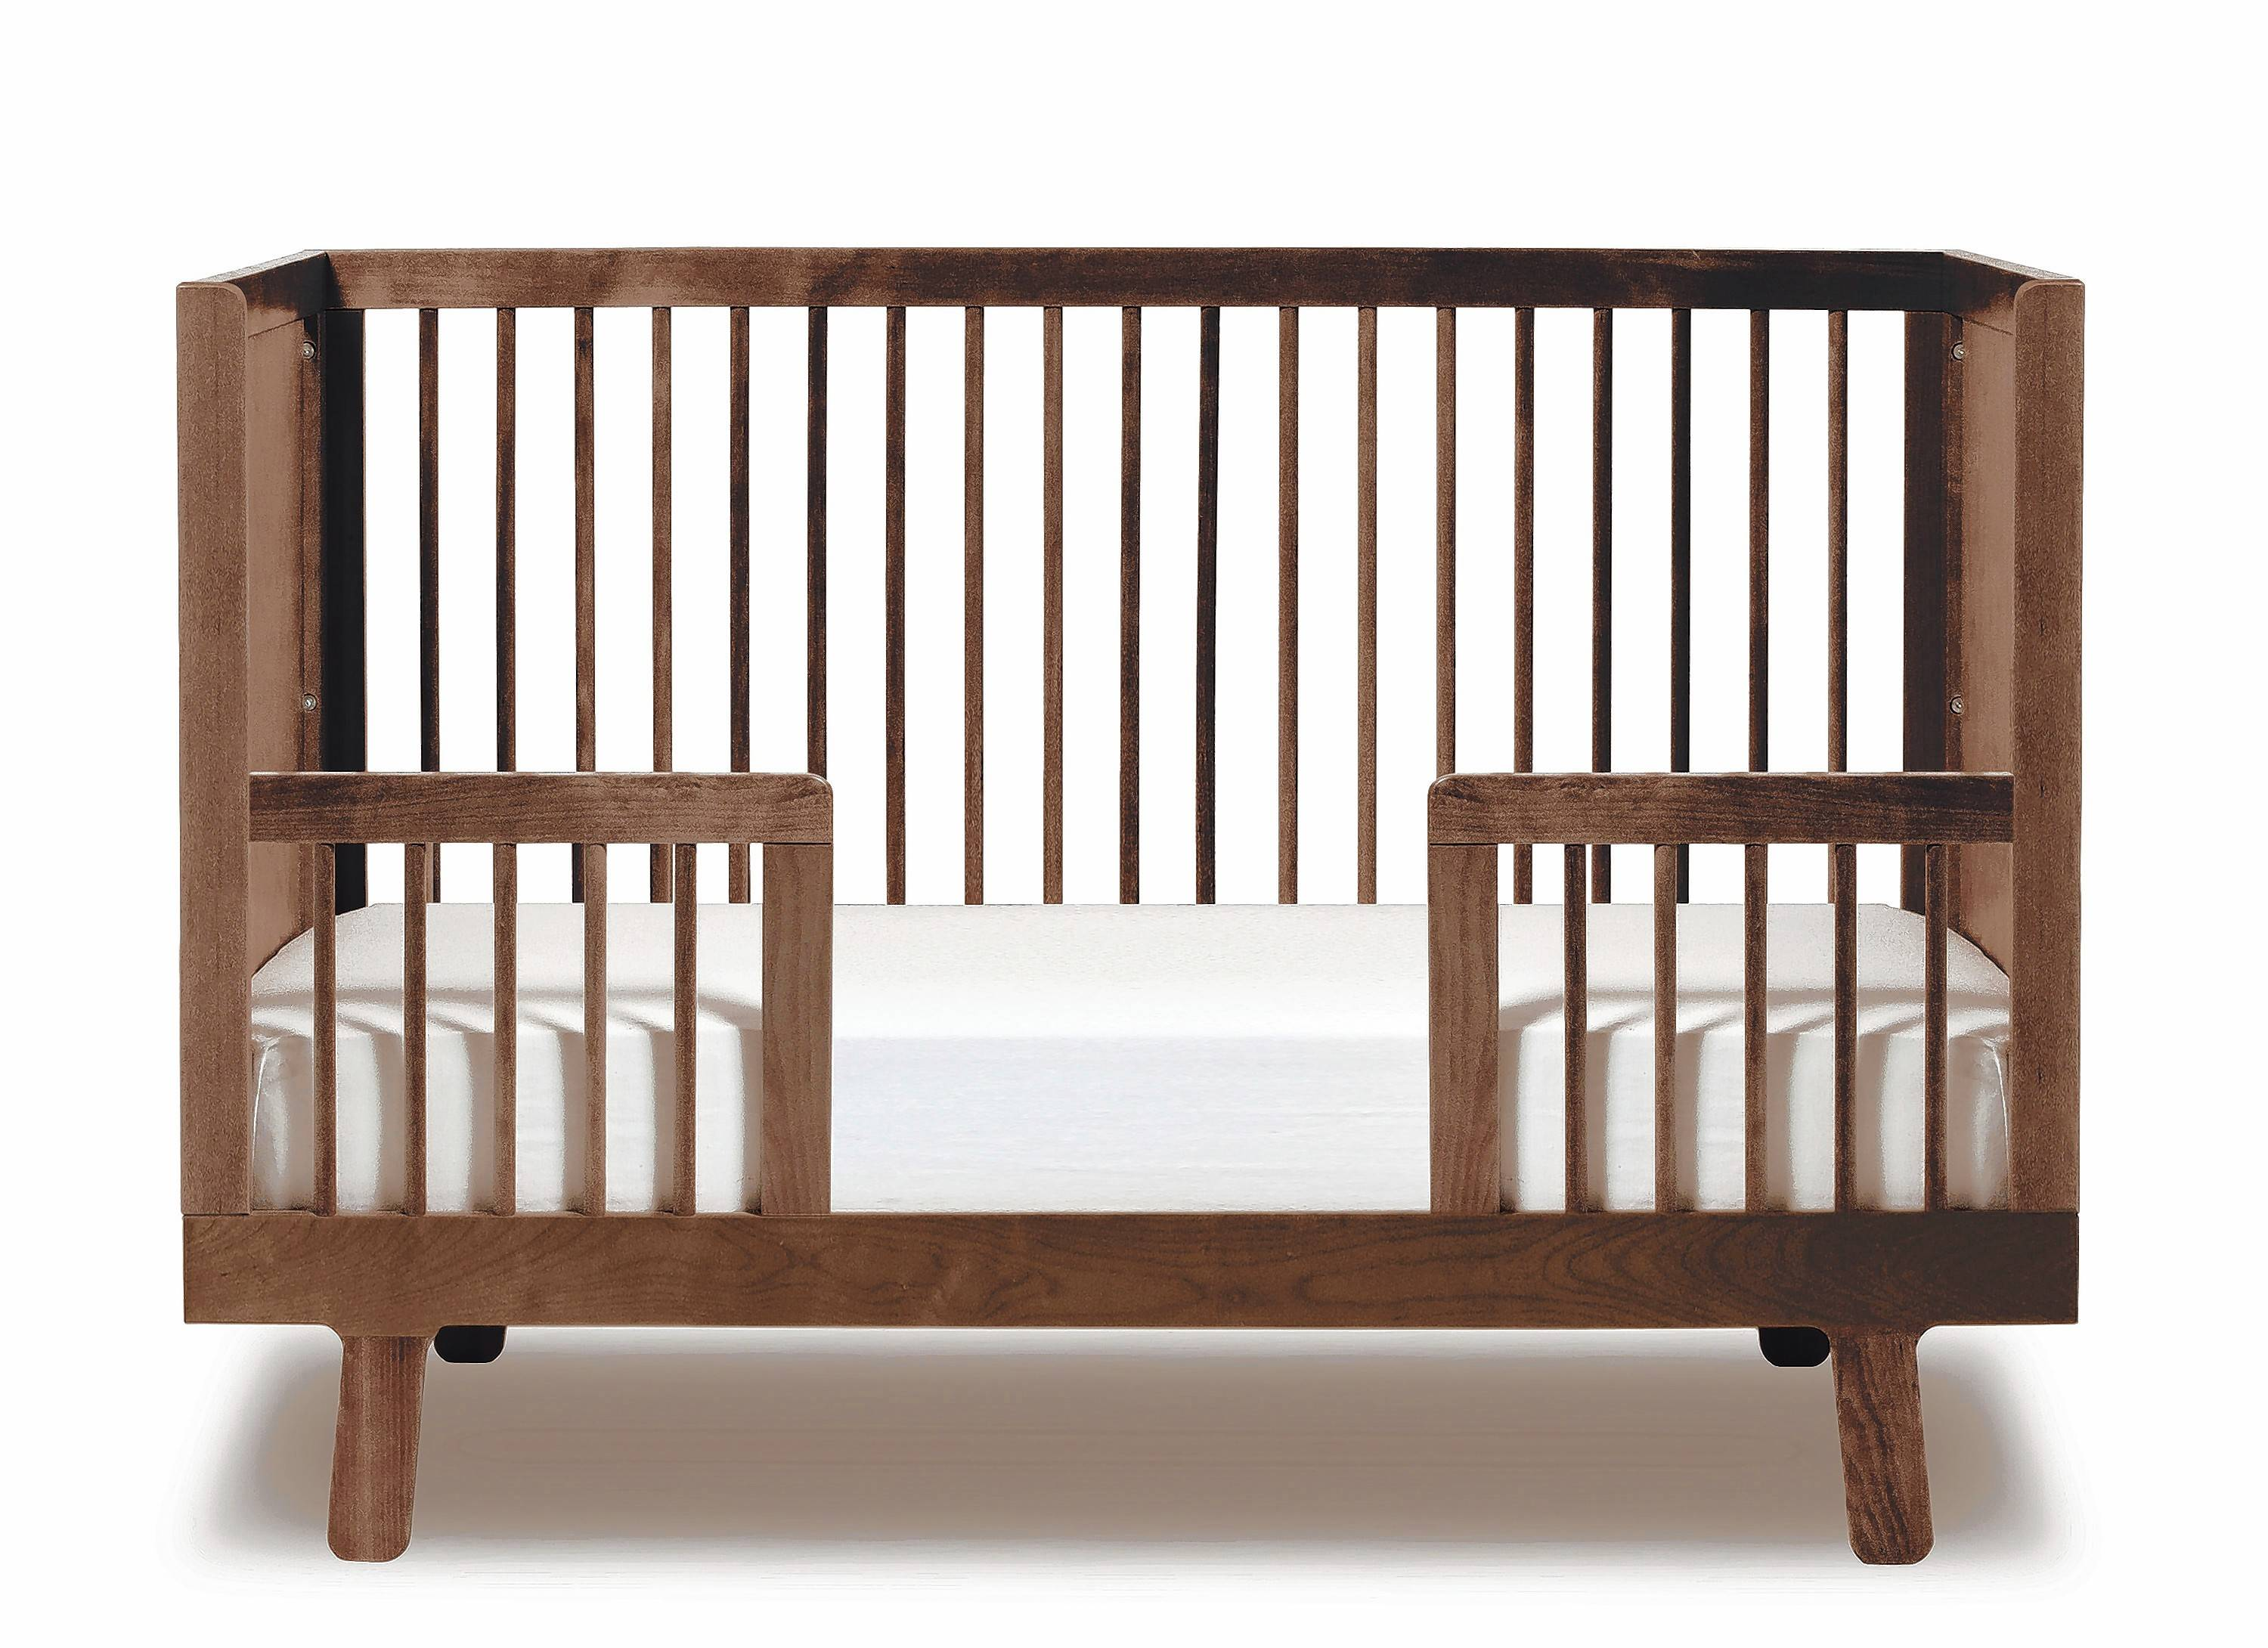 Great New York Based Oeuf Sells A Sparrow Crib That Converts Into A Bed For  Toddlers